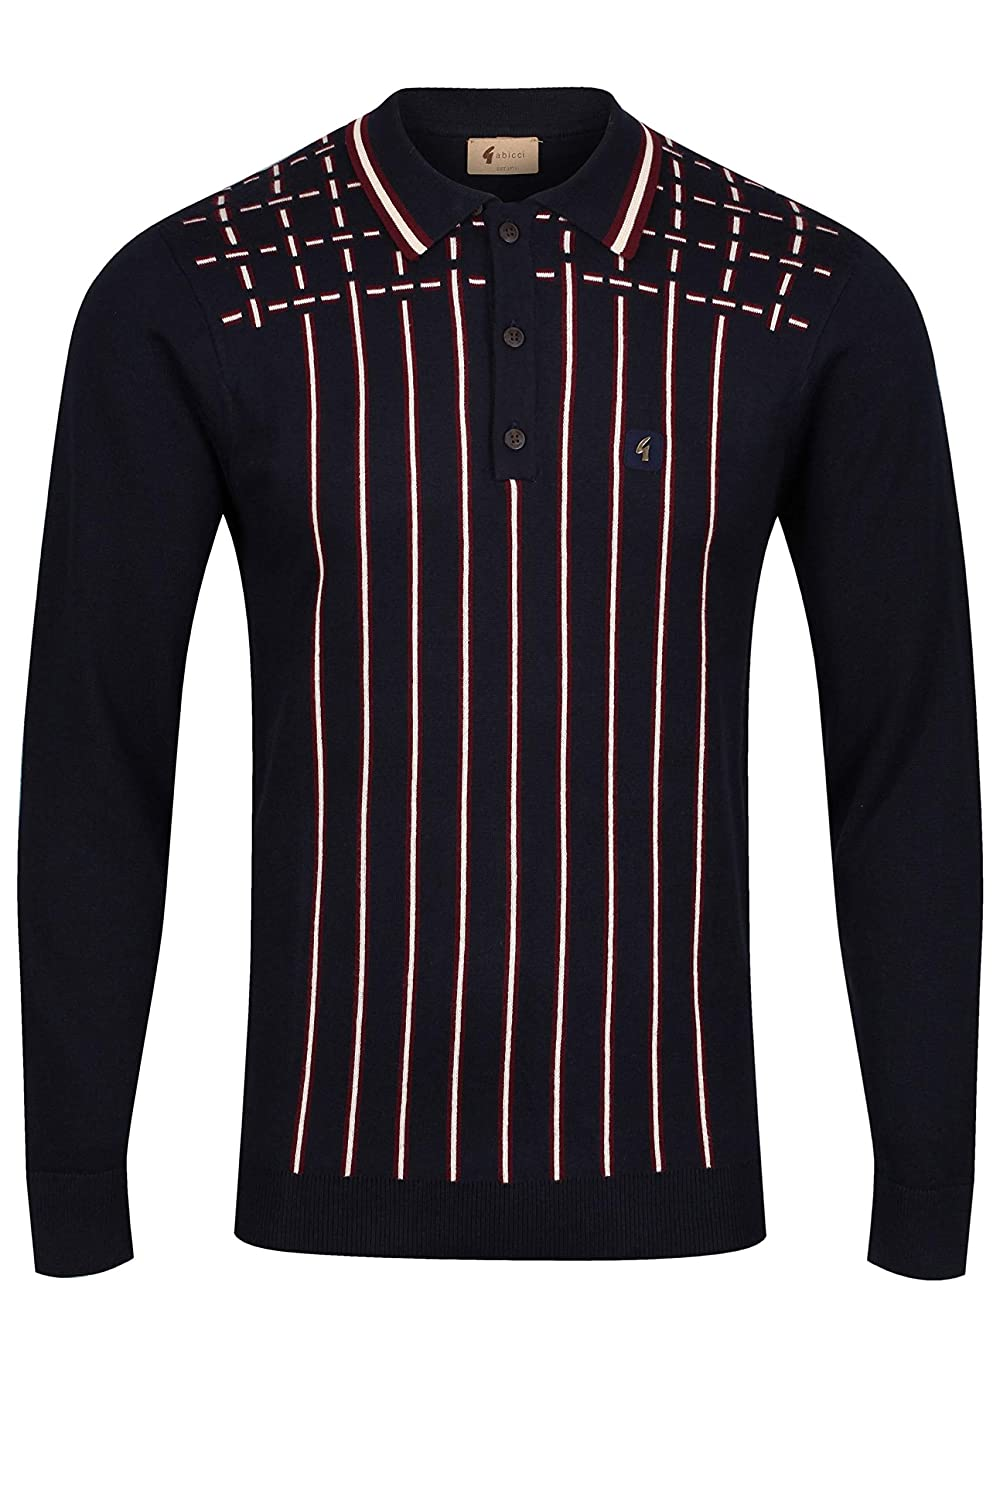 Gabicci Biome Long Sleeve Polo Shirt | Navy Xlarge: Amazon.es ...